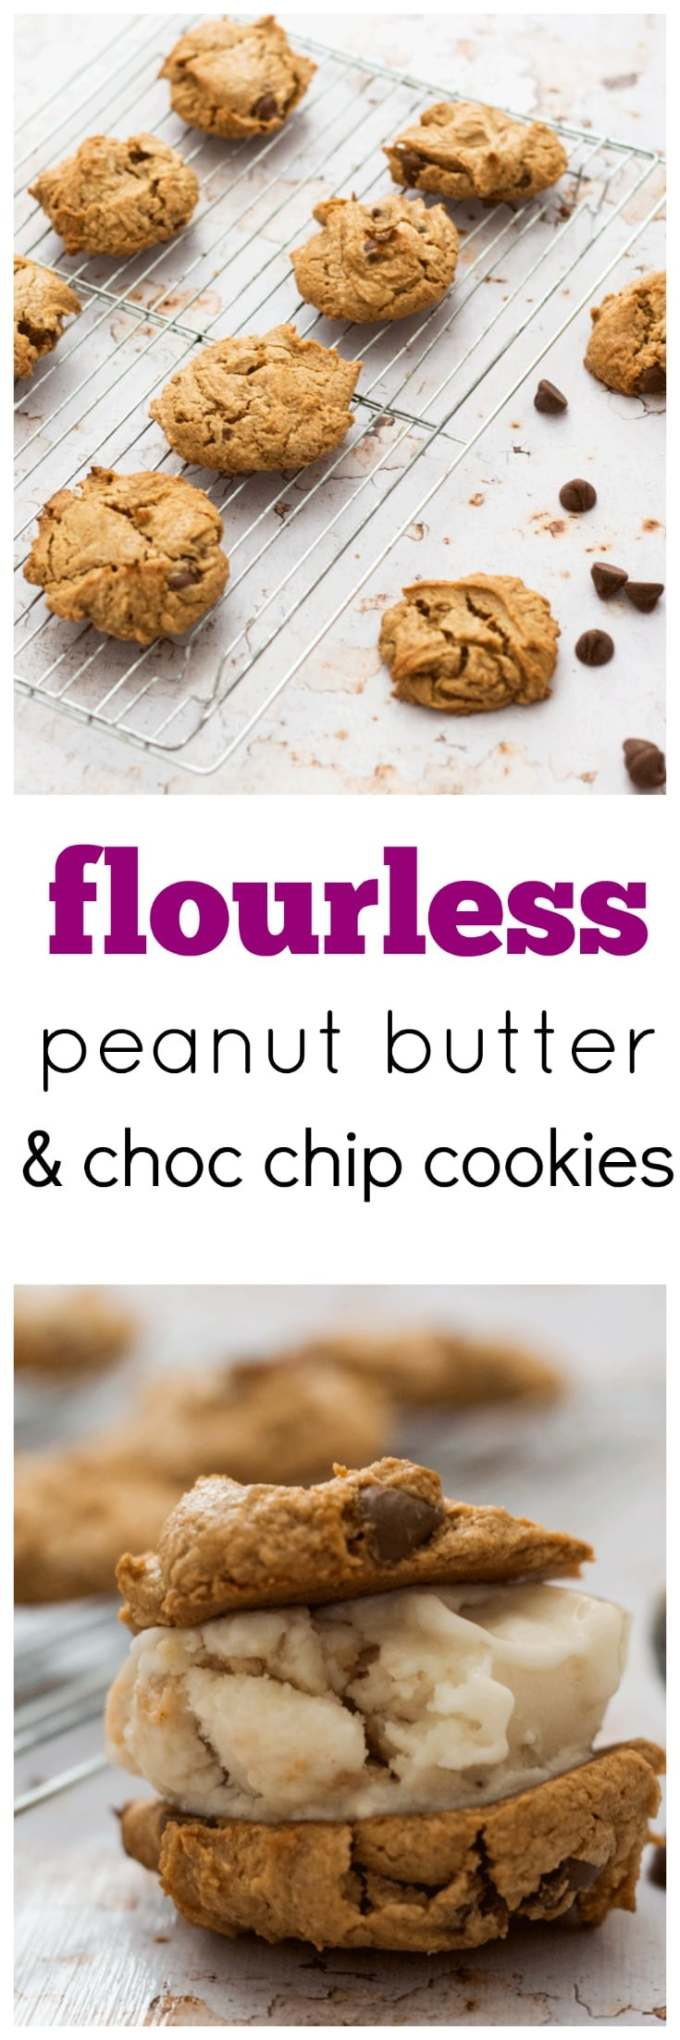 Don't let the flourless aspect put you off. These Truly Flourless Peanut Butter Chocolate Chip Cookies are EPIC!! Only 5 ingredients and minimal preparation is required for soft and gooey peanut buttery goodness.